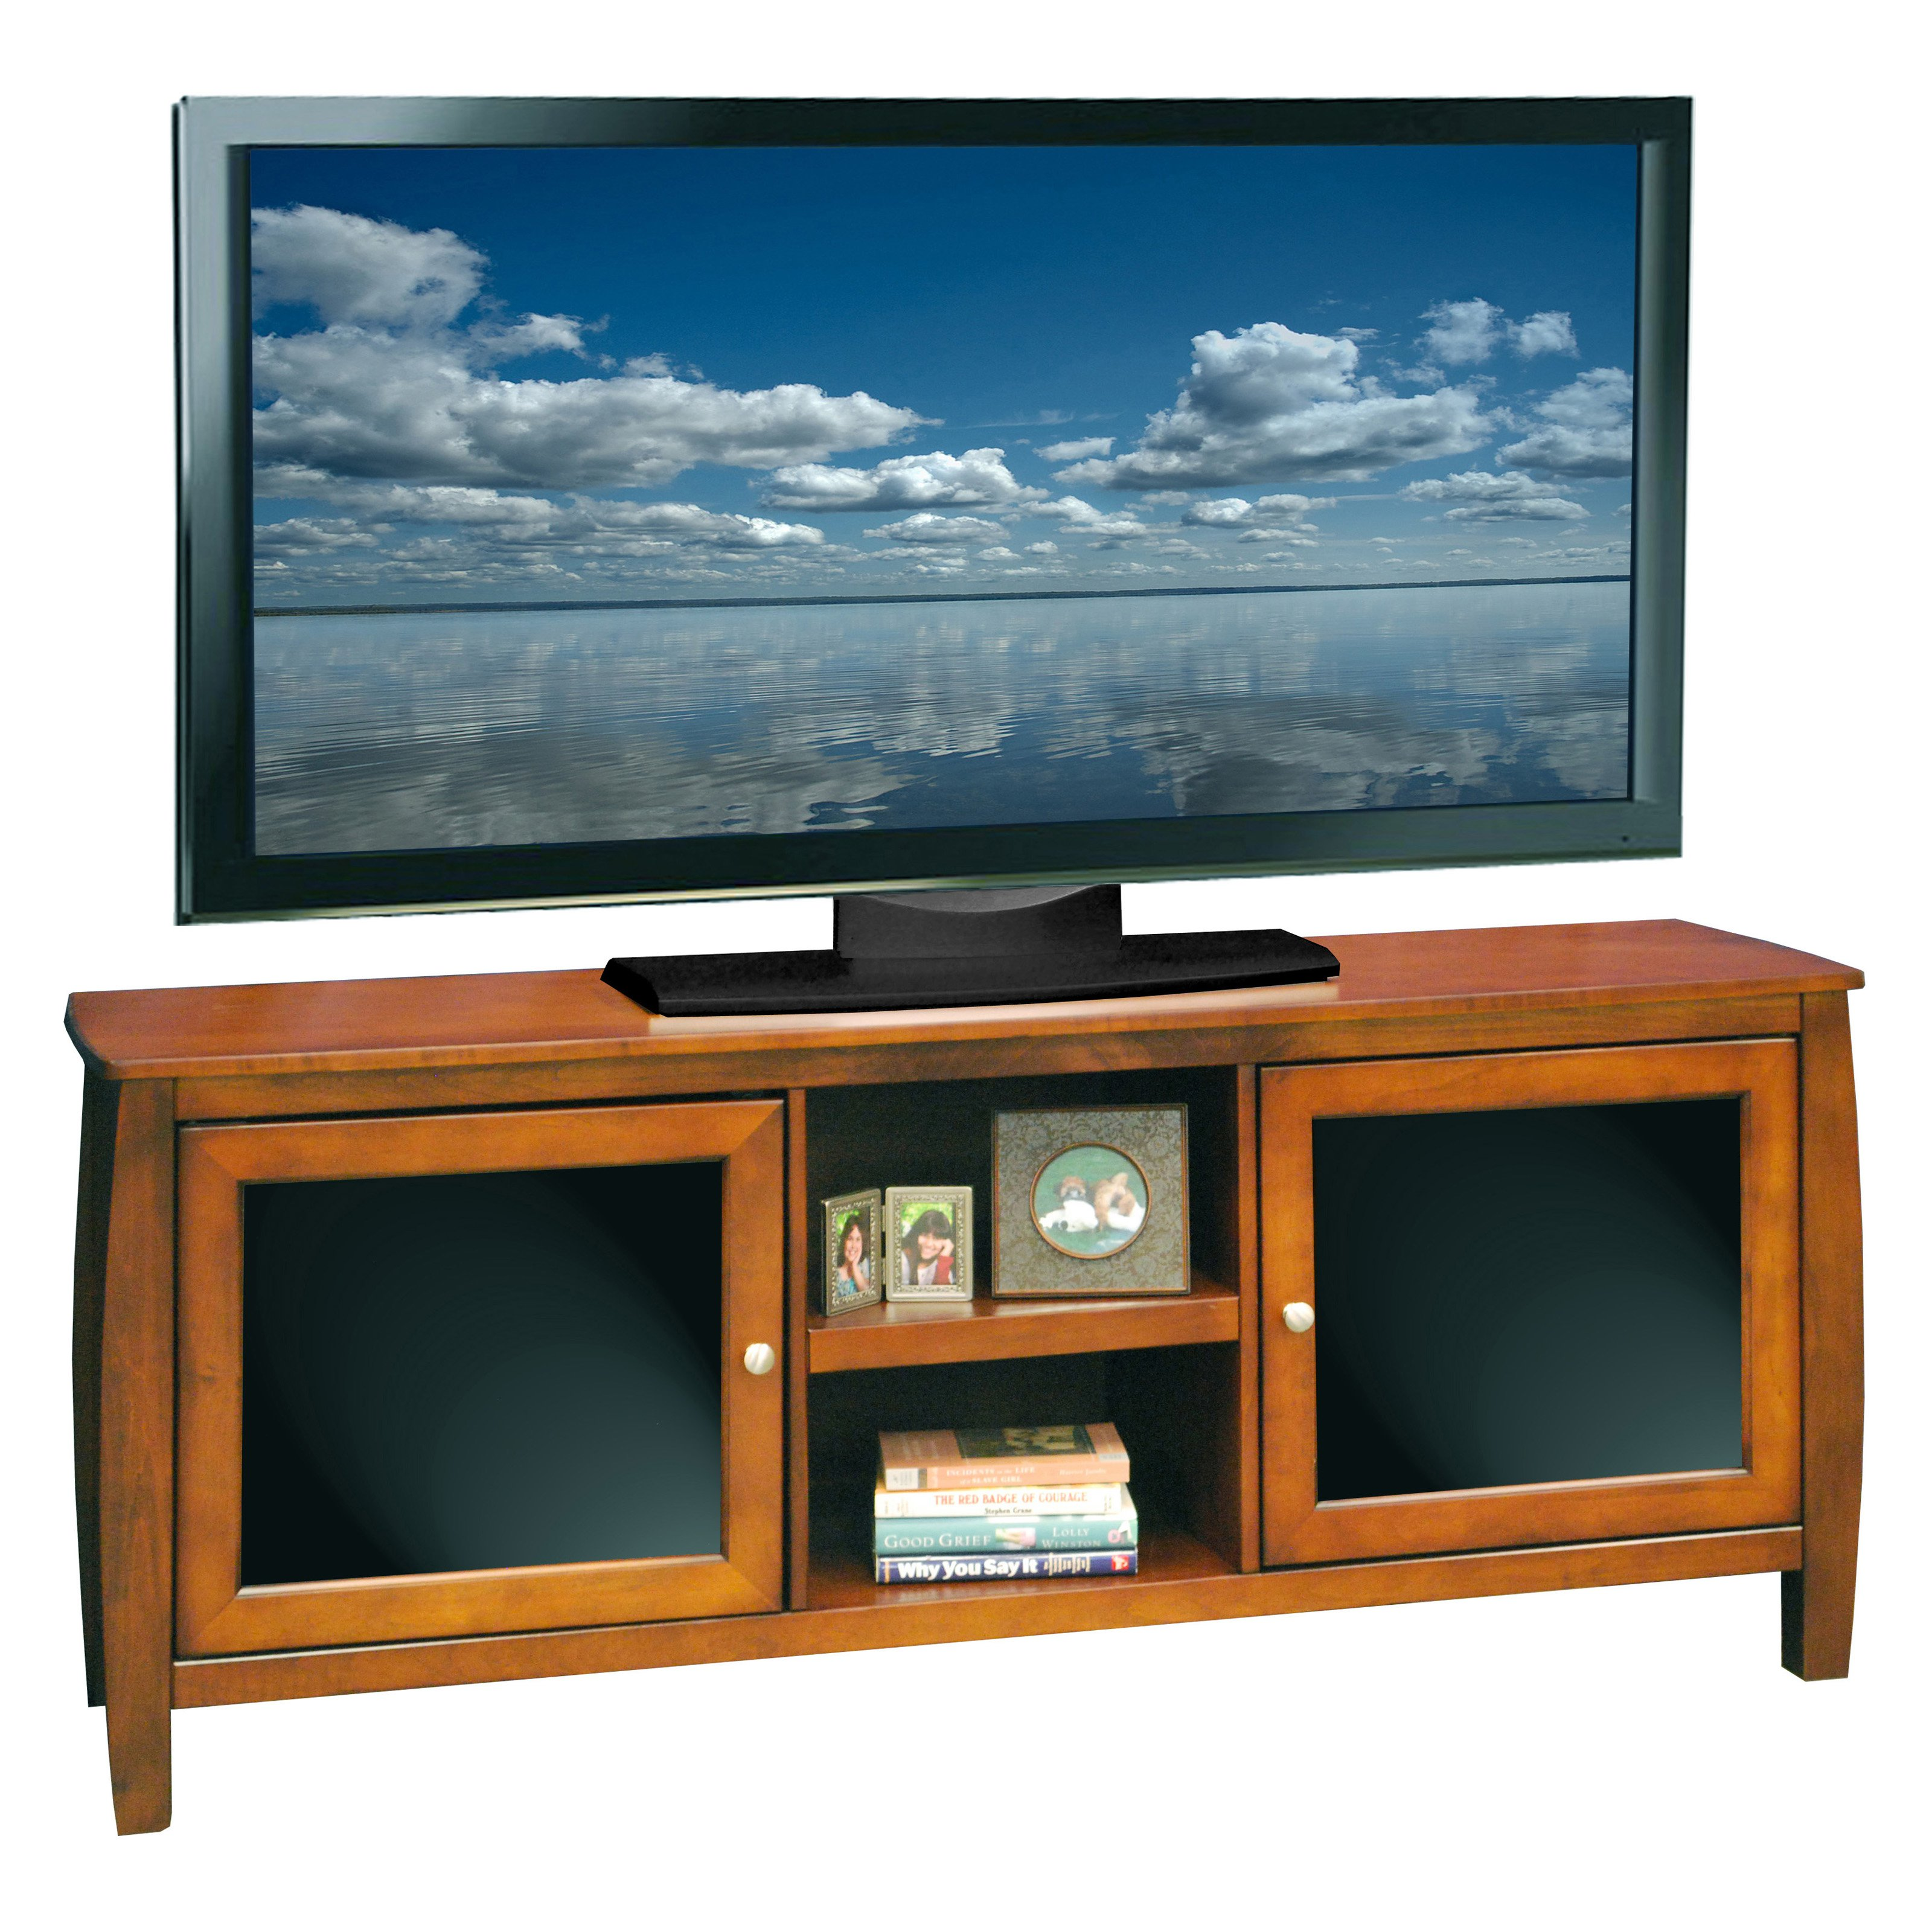 Legends Curve 60 in. TV Console - Spiced Rum